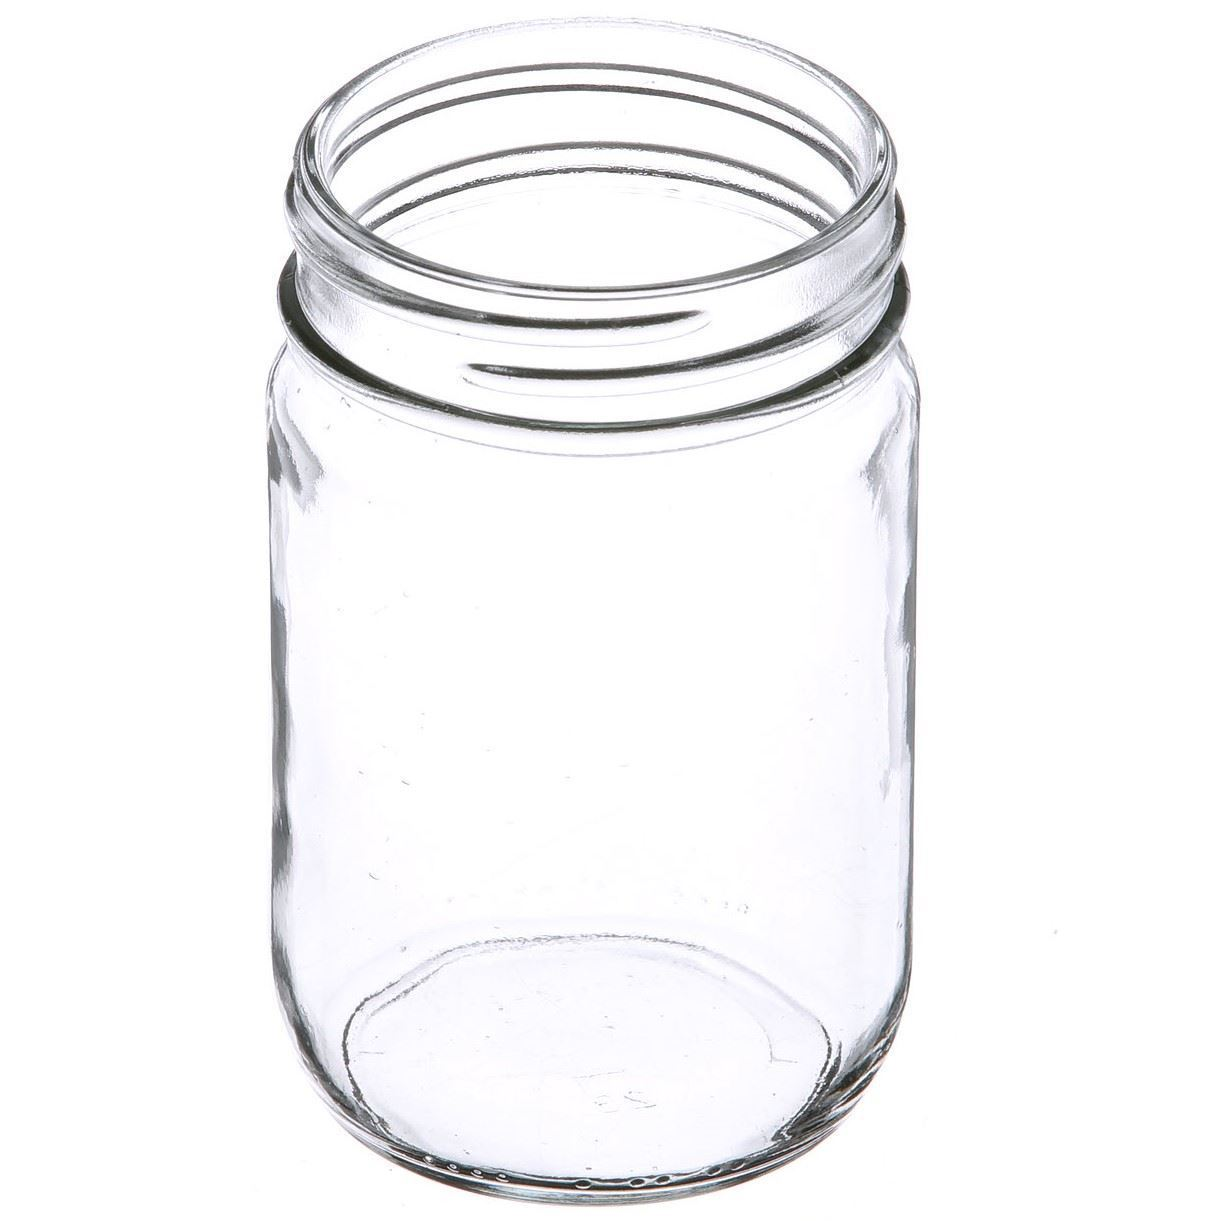 Empty Jar Drawing